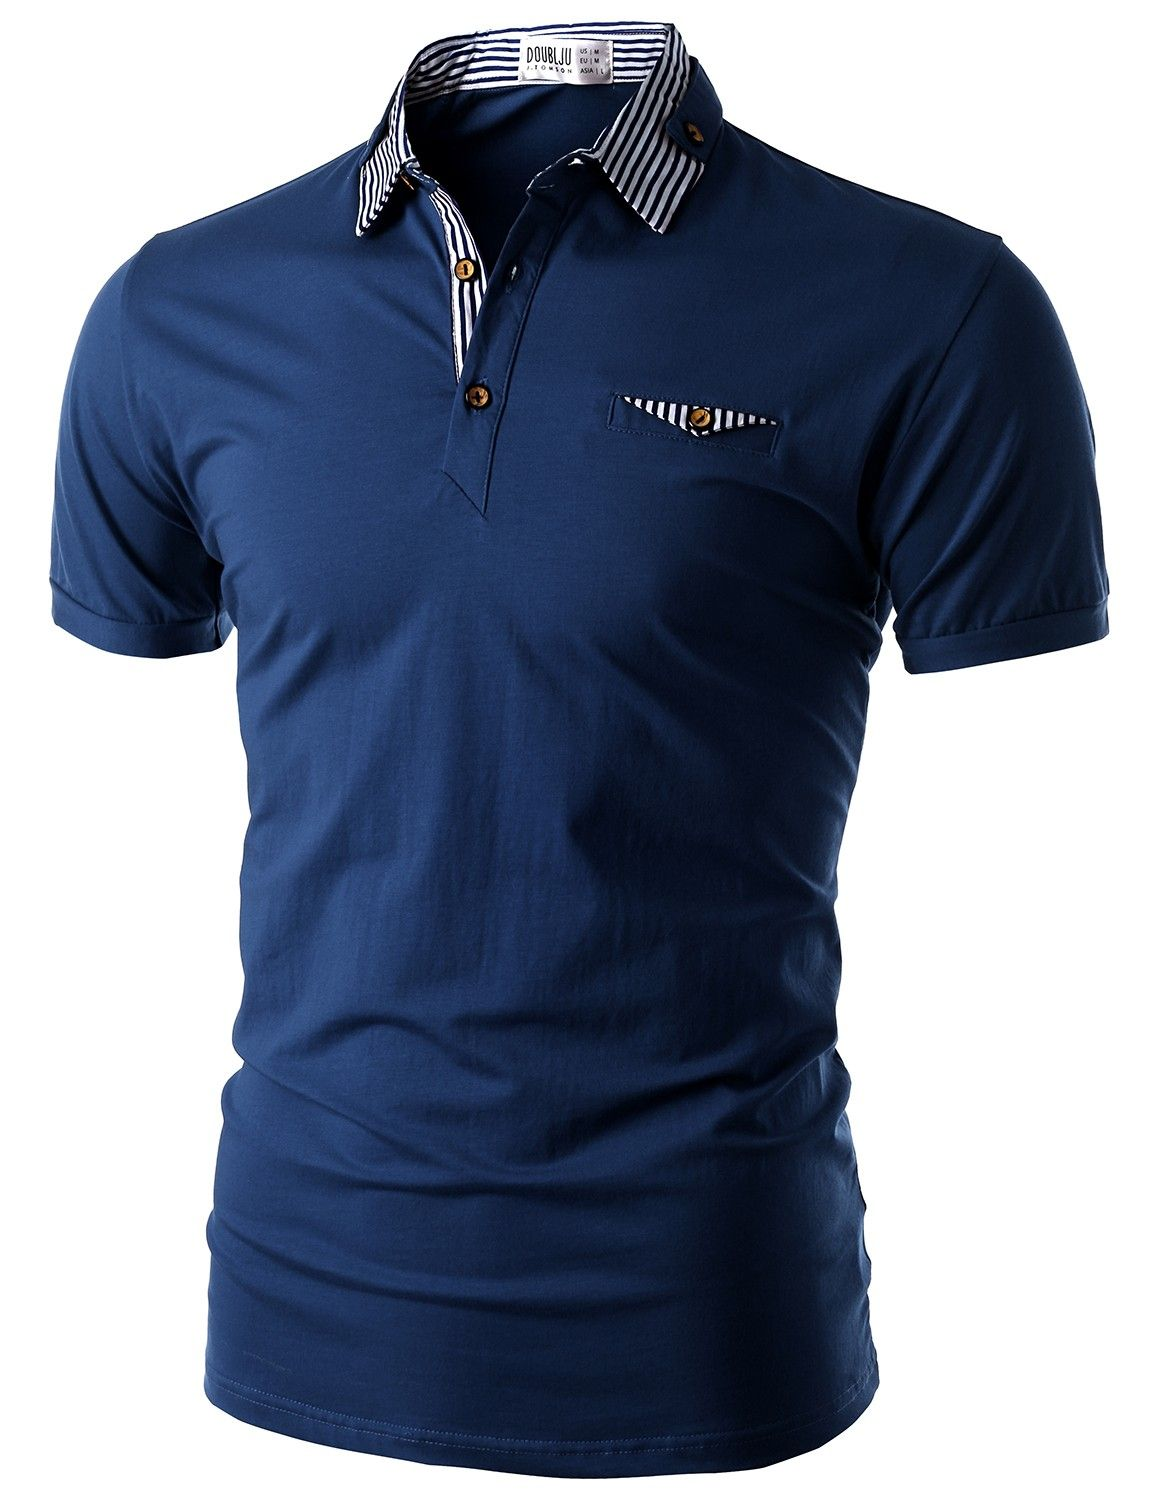 Doublju Mens Short Sleeve Polo Shirt With Neck Band Detail Cmtts06